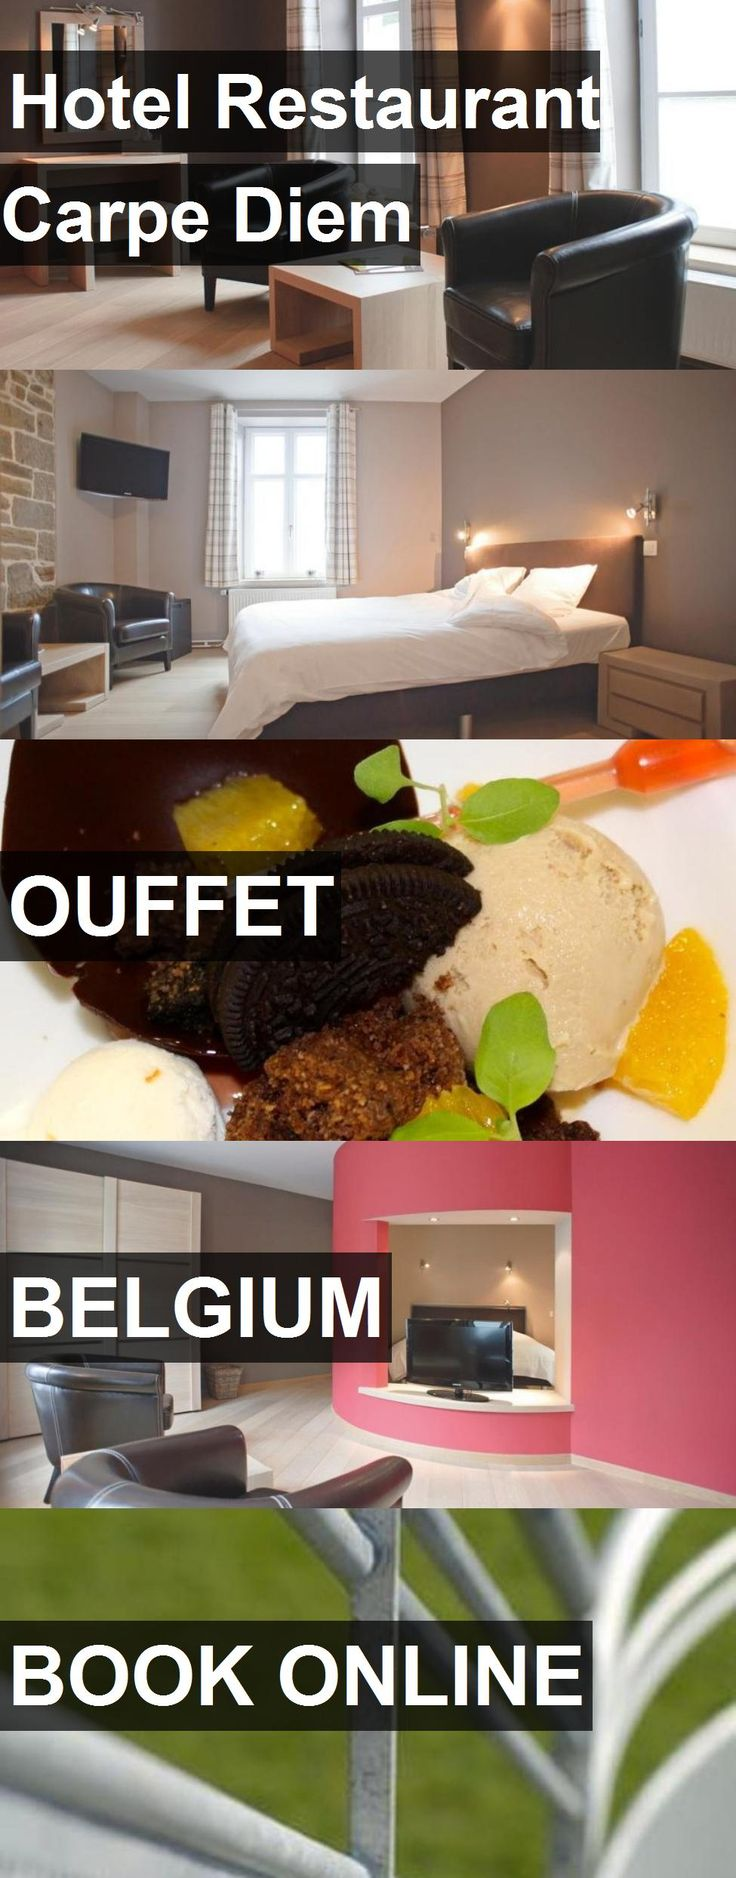 Hotel Hotel Restaurant Carpe Diem in Ouffet, Belgium. For more information, photos, reviews and best prices please follow the link. #Belgium #Ouffet #hotel #travel #vacation